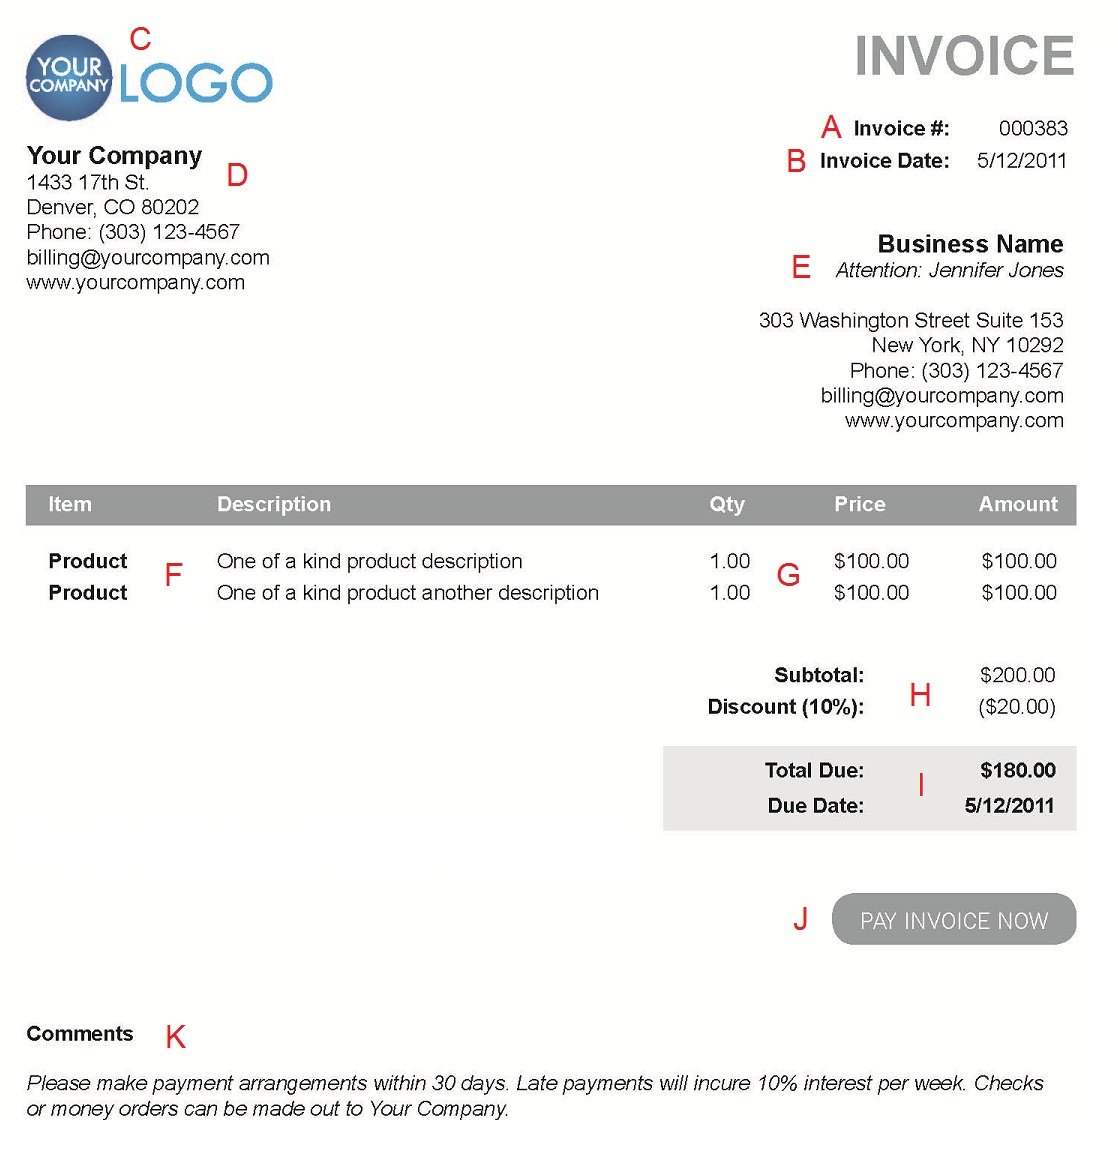 Centralasianshepherdus  Surprising The  Different Sections Of An Electronic Payment Invoice With Interesting A  With Divine Invoice Requirements Also Blank Auto Repair Invoice In Addition Subcontractor Invoice And Invoice Copy As Well As Create And Invoice Additionally Invoice Program For Mac From Paysimplecom With Centralasianshepherdus  Interesting The  Different Sections Of An Electronic Payment Invoice With Divine A  And Surprising Invoice Requirements Also Blank Auto Repair Invoice In Addition Subcontractor Invoice From Paysimplecom